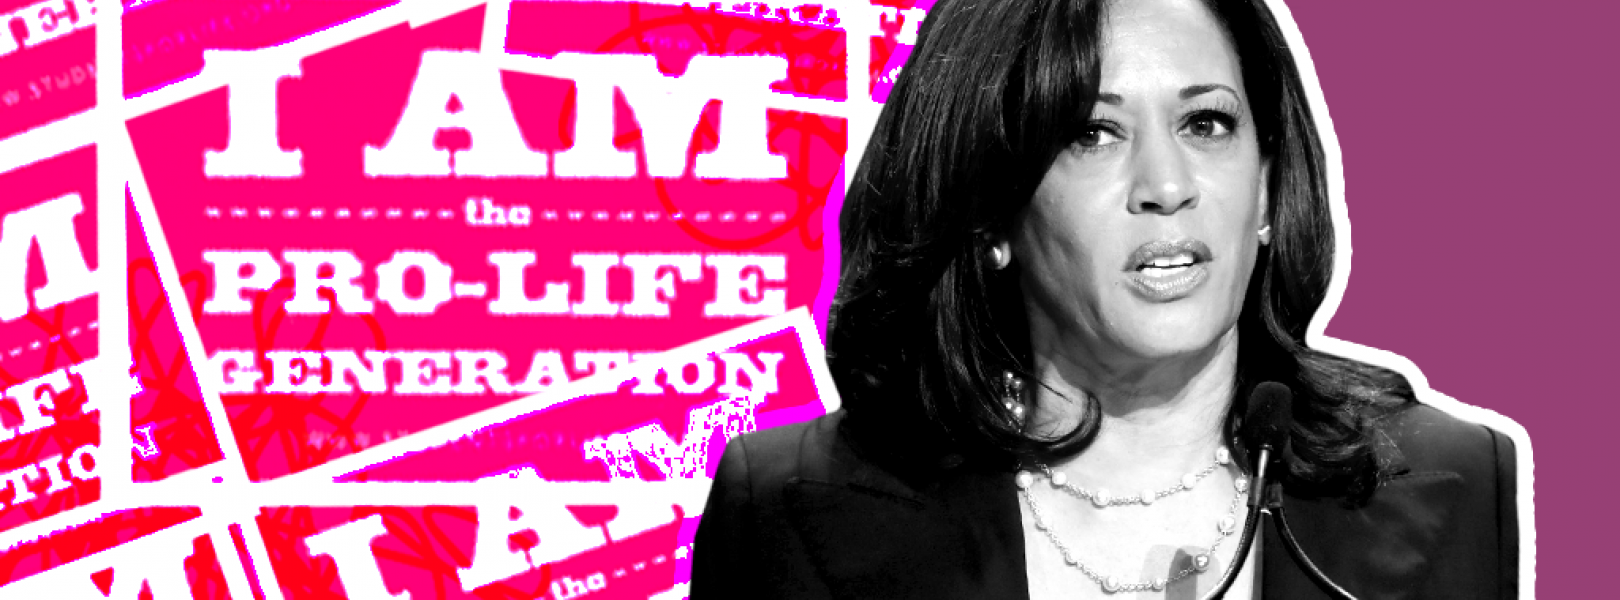 "Image of Kamala Harris in front of ""I am the pro-life generation"" signs"